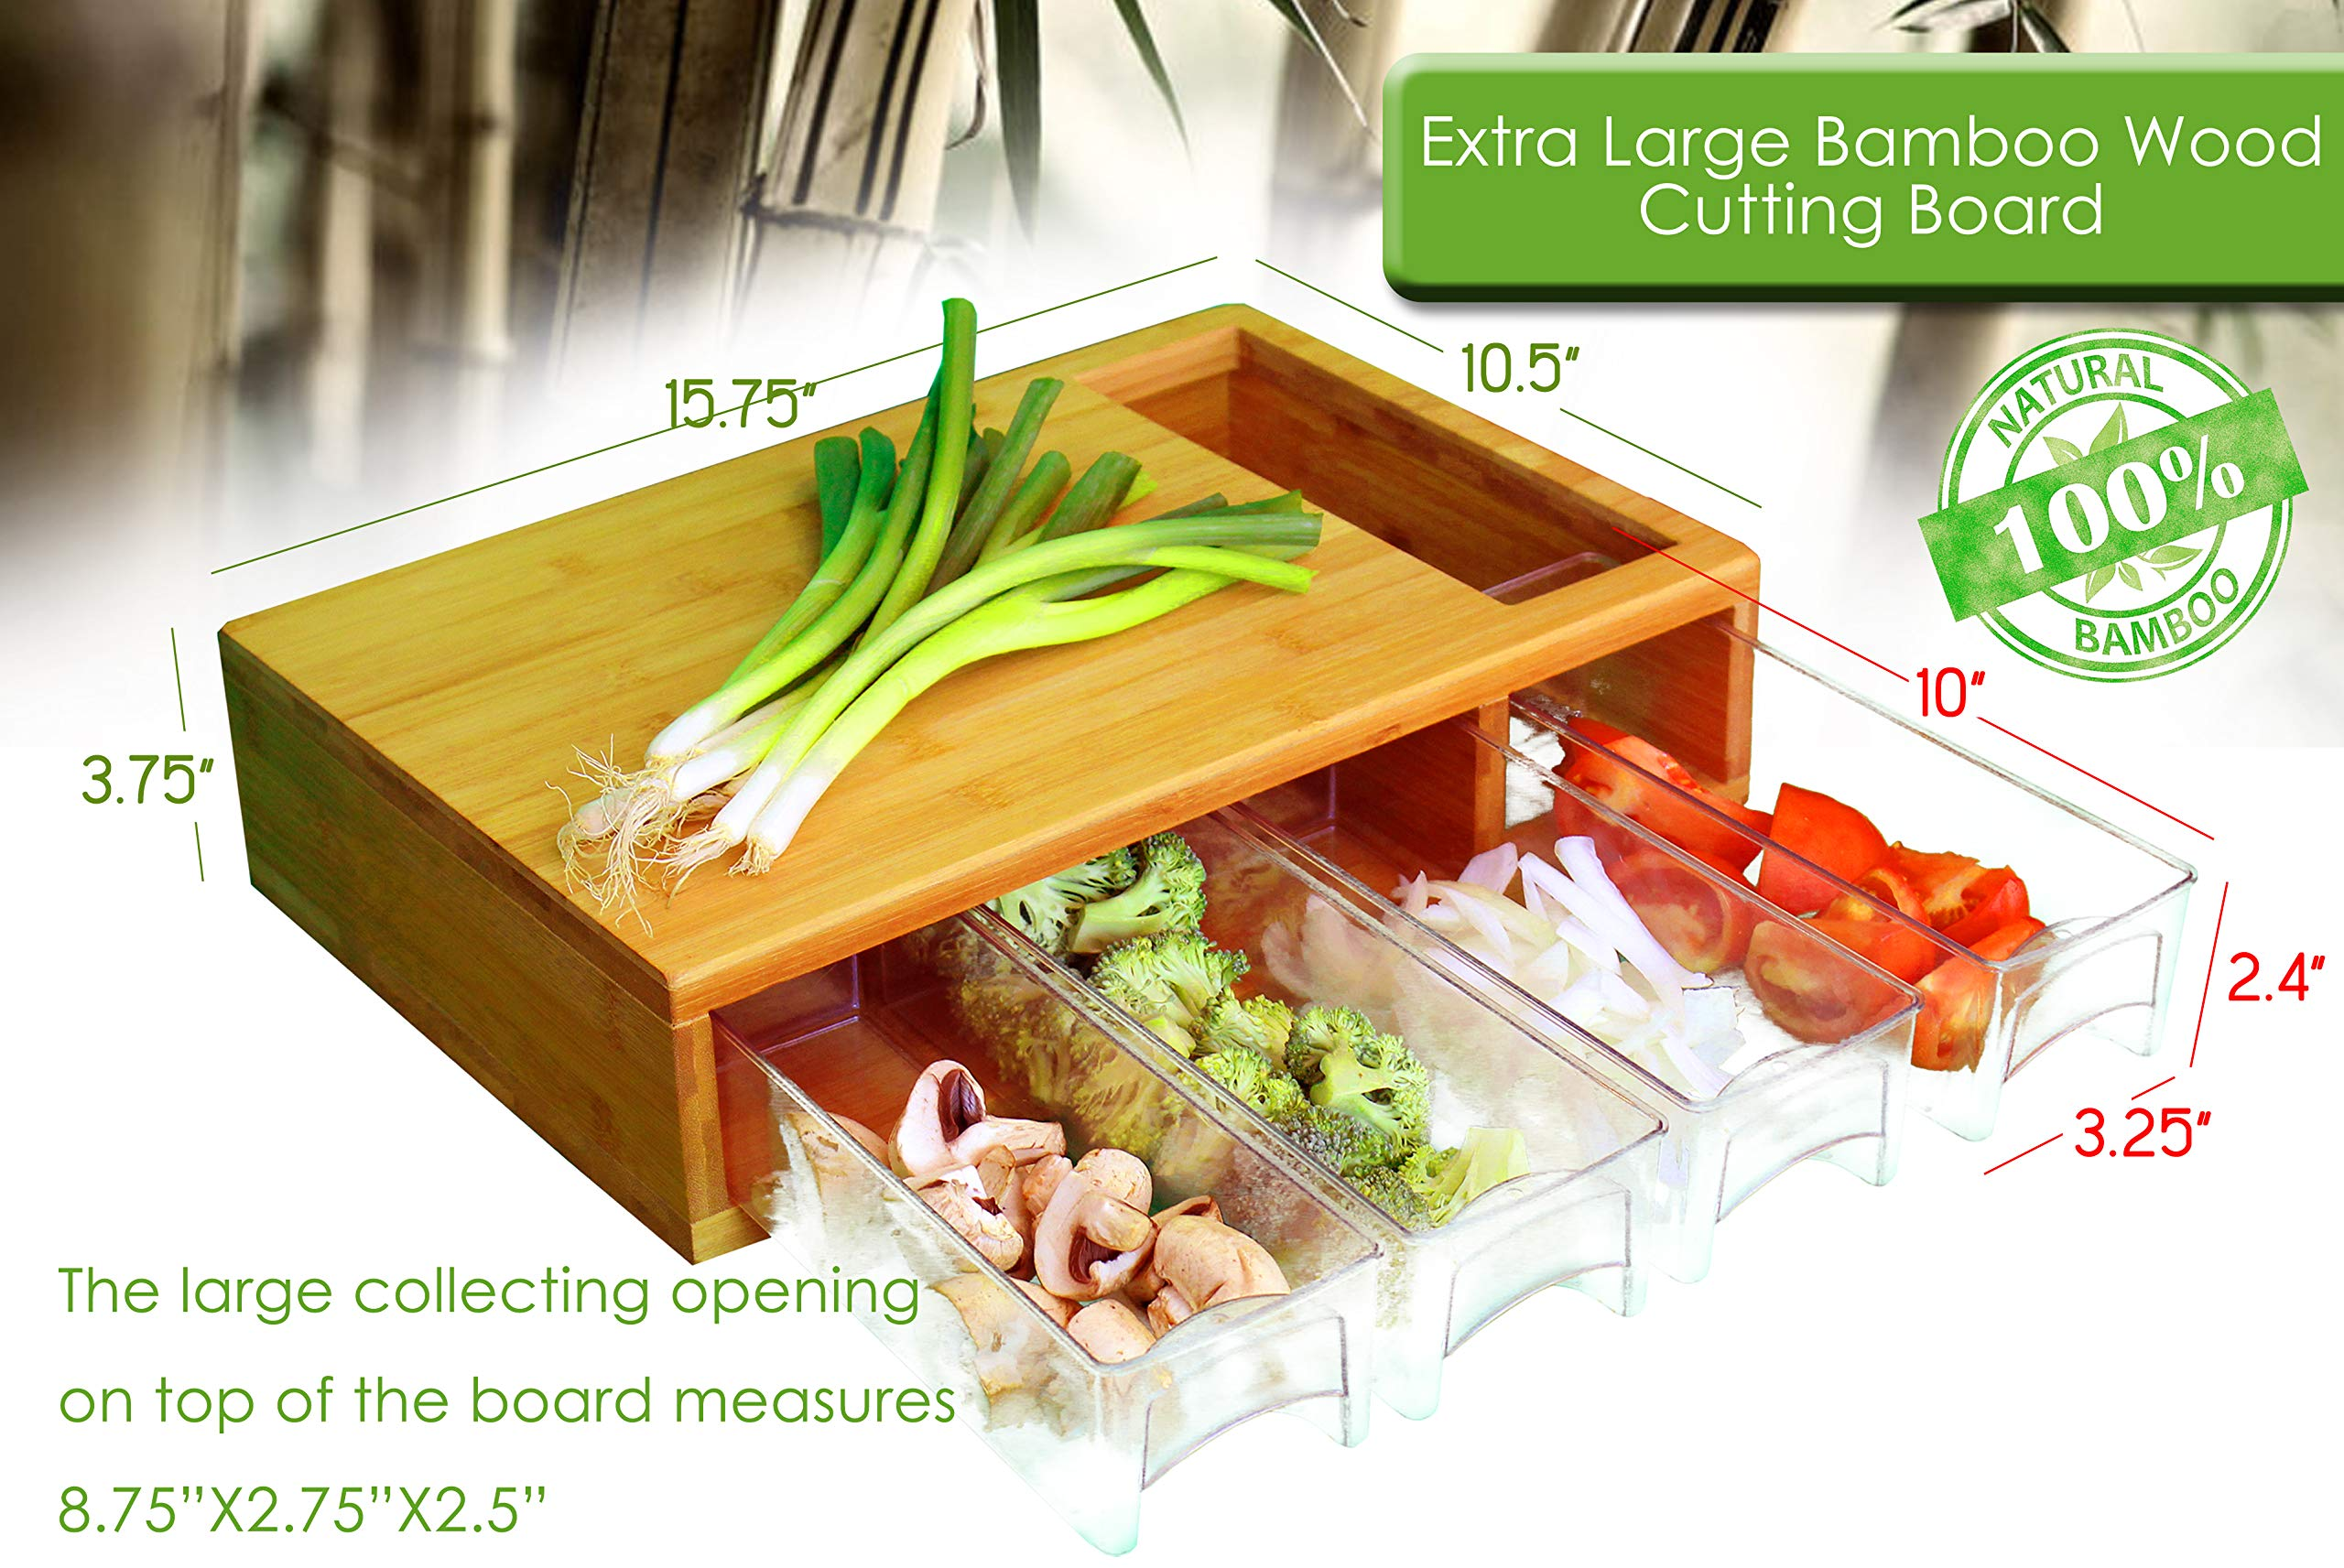 Large Bamboo Cutting Board with Trays/Draws - Wood Butcher Block with 4 Drawers & Opening For Meat, Fruits, Veggies, Bread, Cheese – Naturally Antimicrobial – Make Meal Prep Easy by Simpli Better (Image #5)